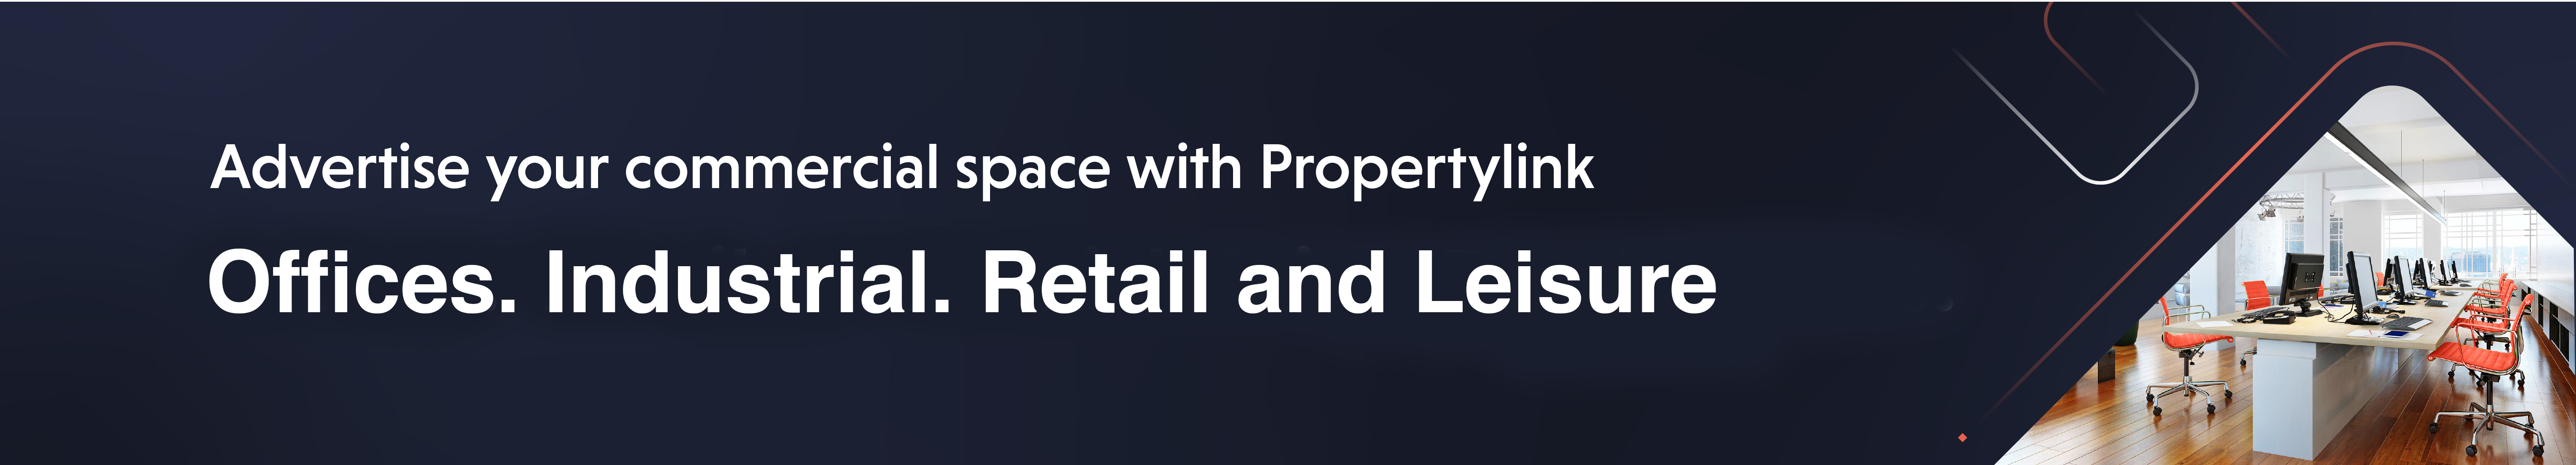 Advertise your commercial property with Propertylink